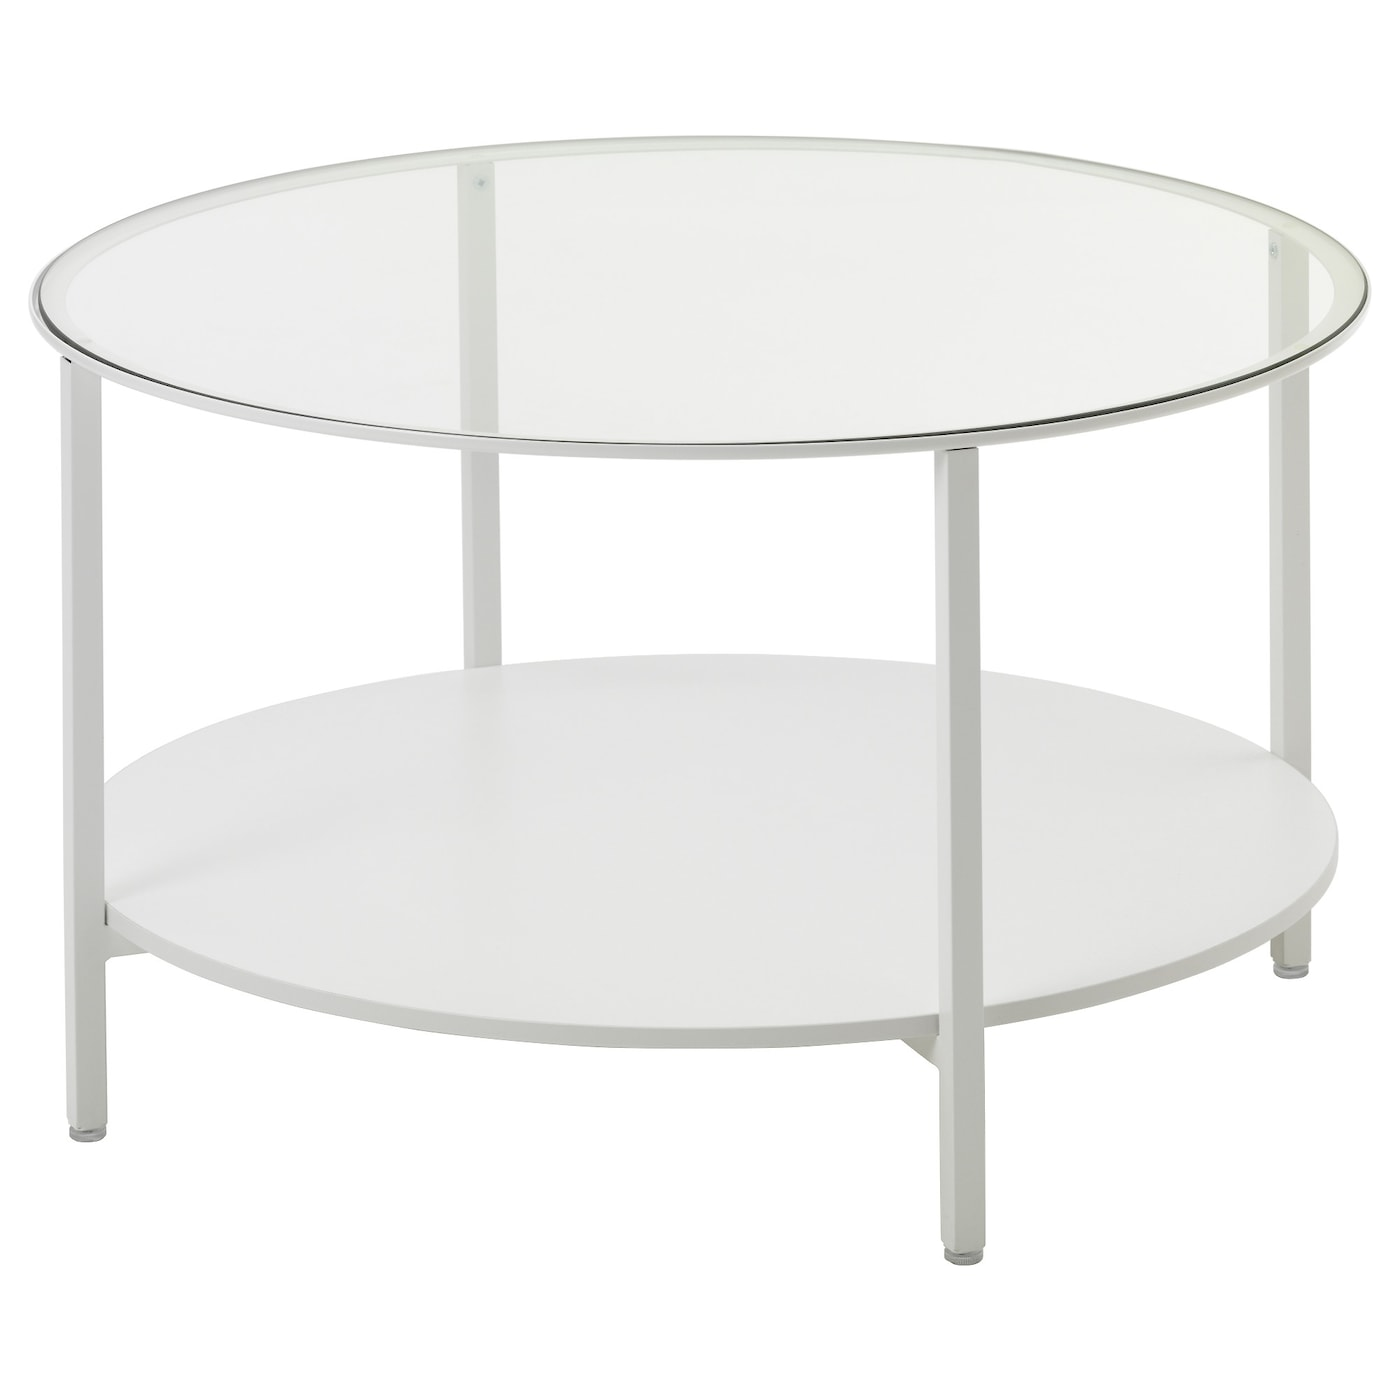 Ikea Marble Top Coffee Table: VITTSJÖ Coffee Table White/glass 75 Cm